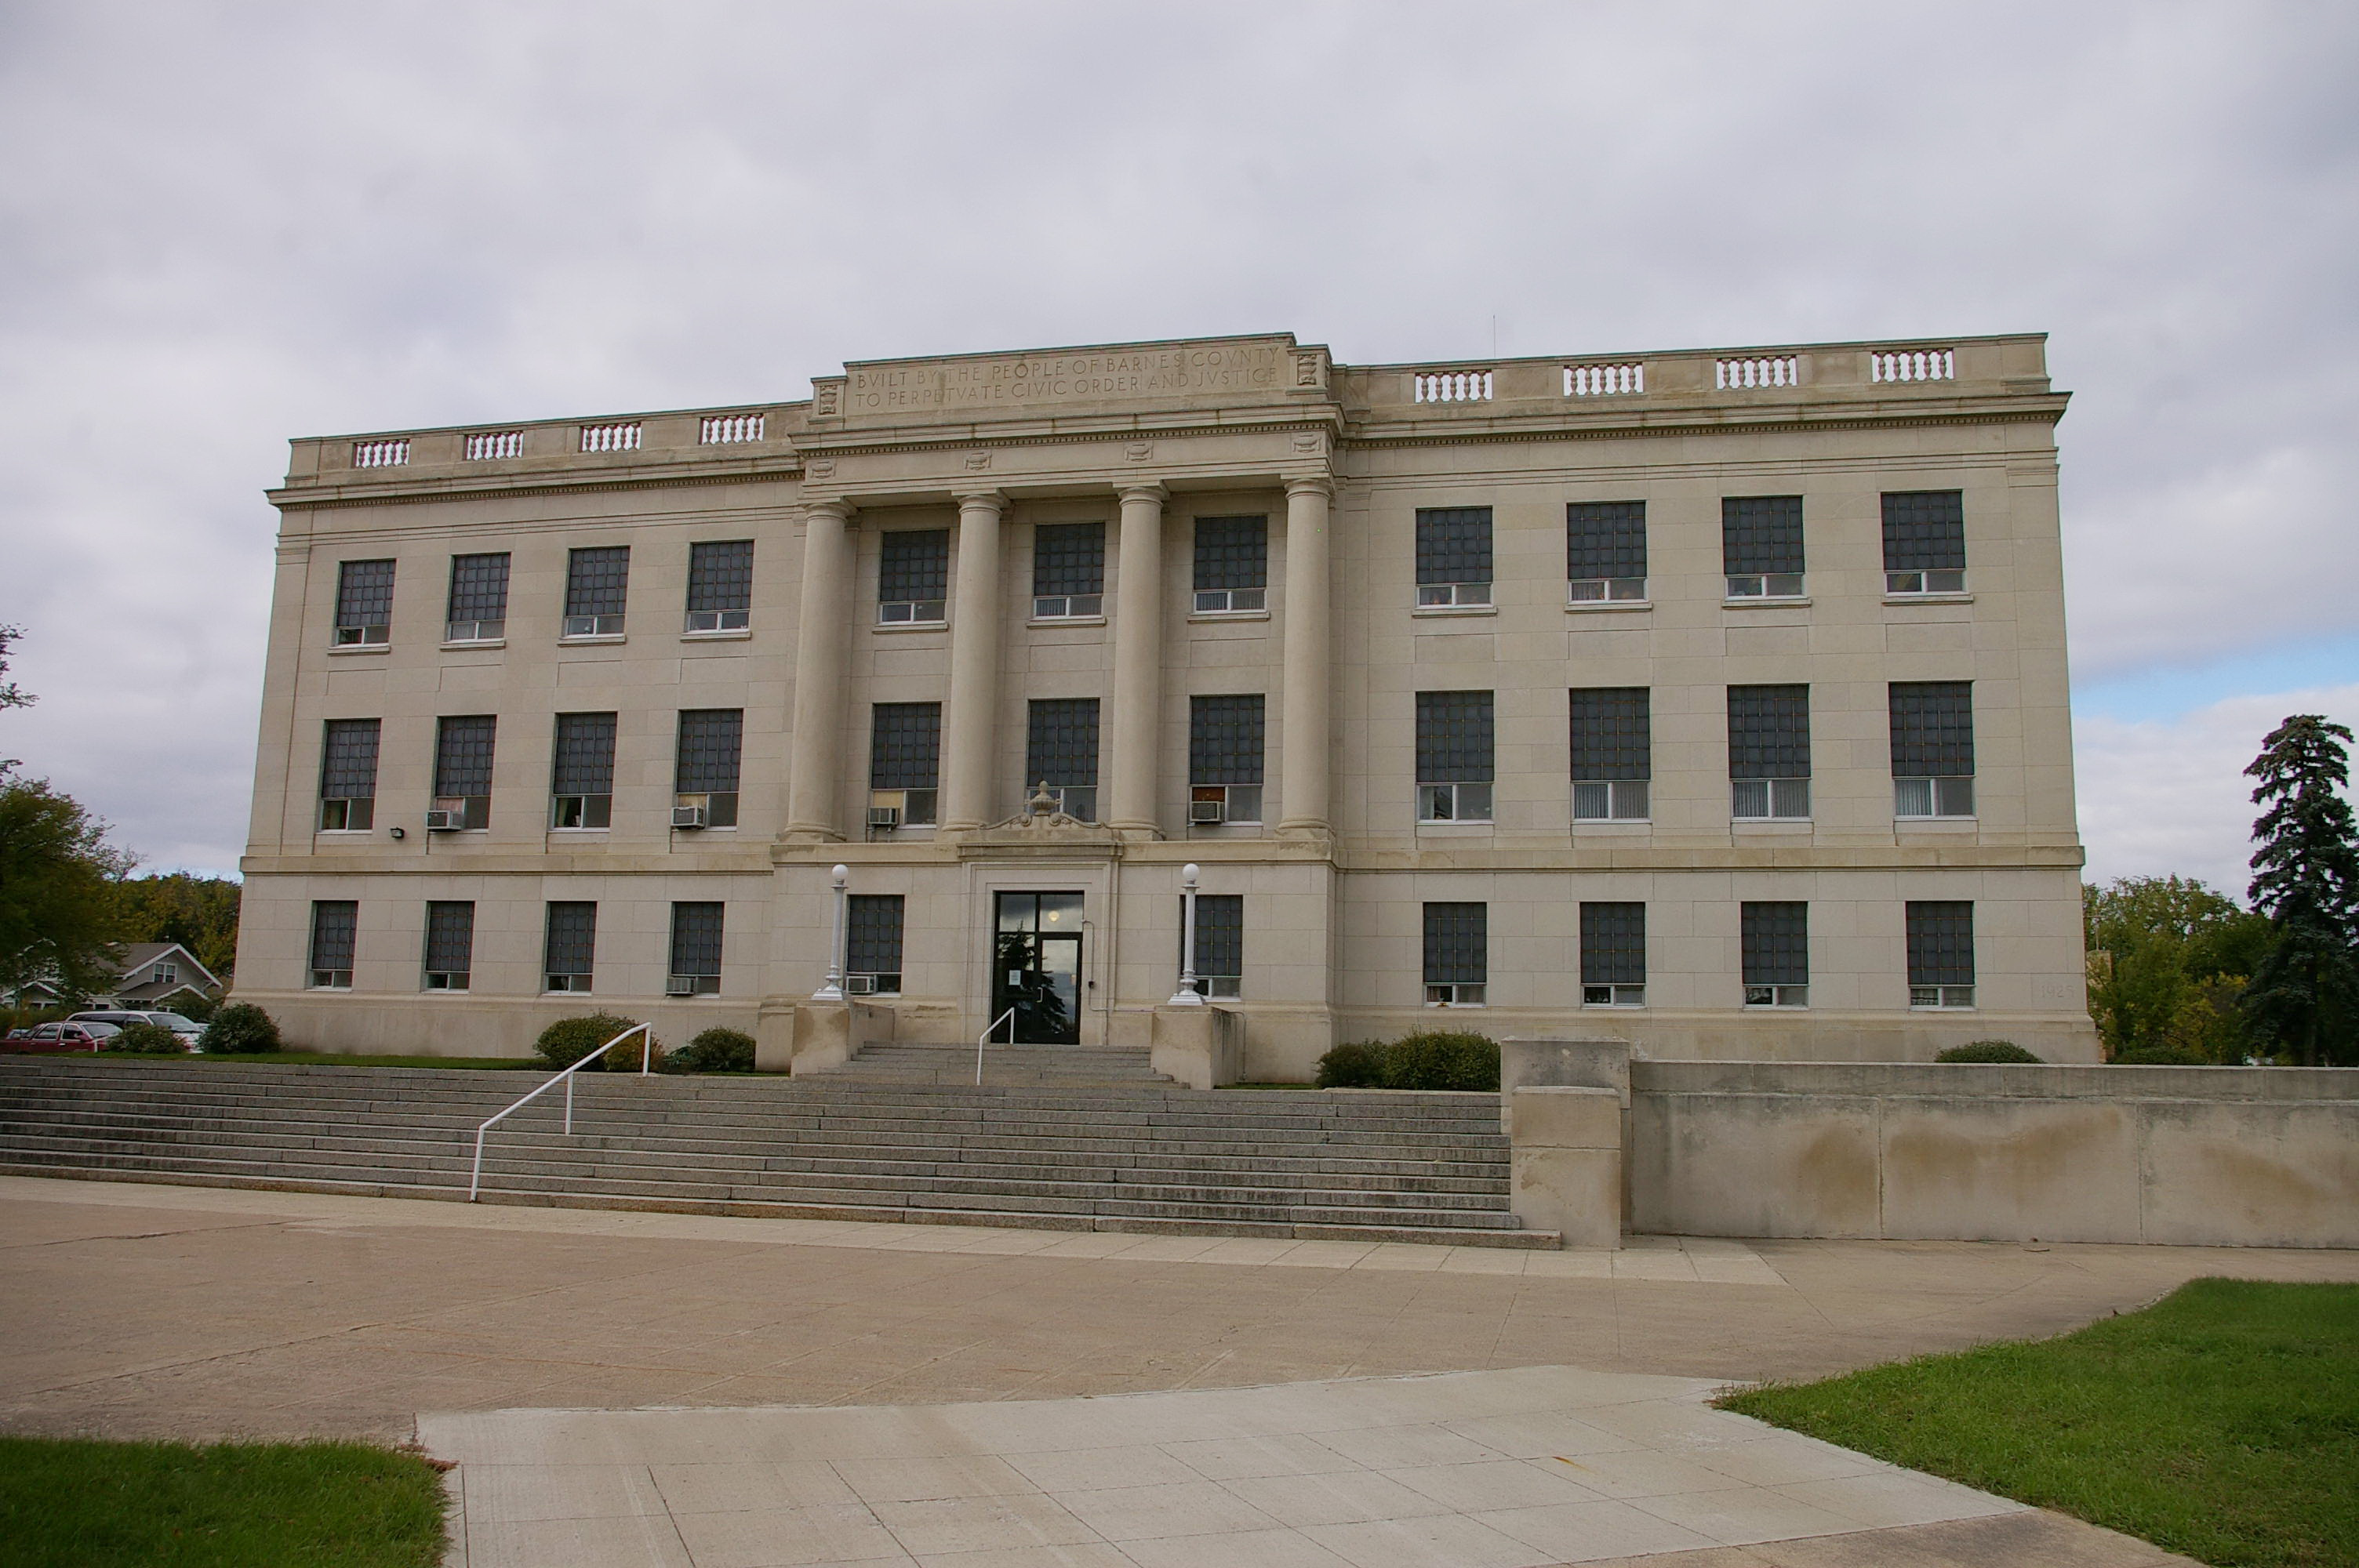 Barnes County   US Courthouses